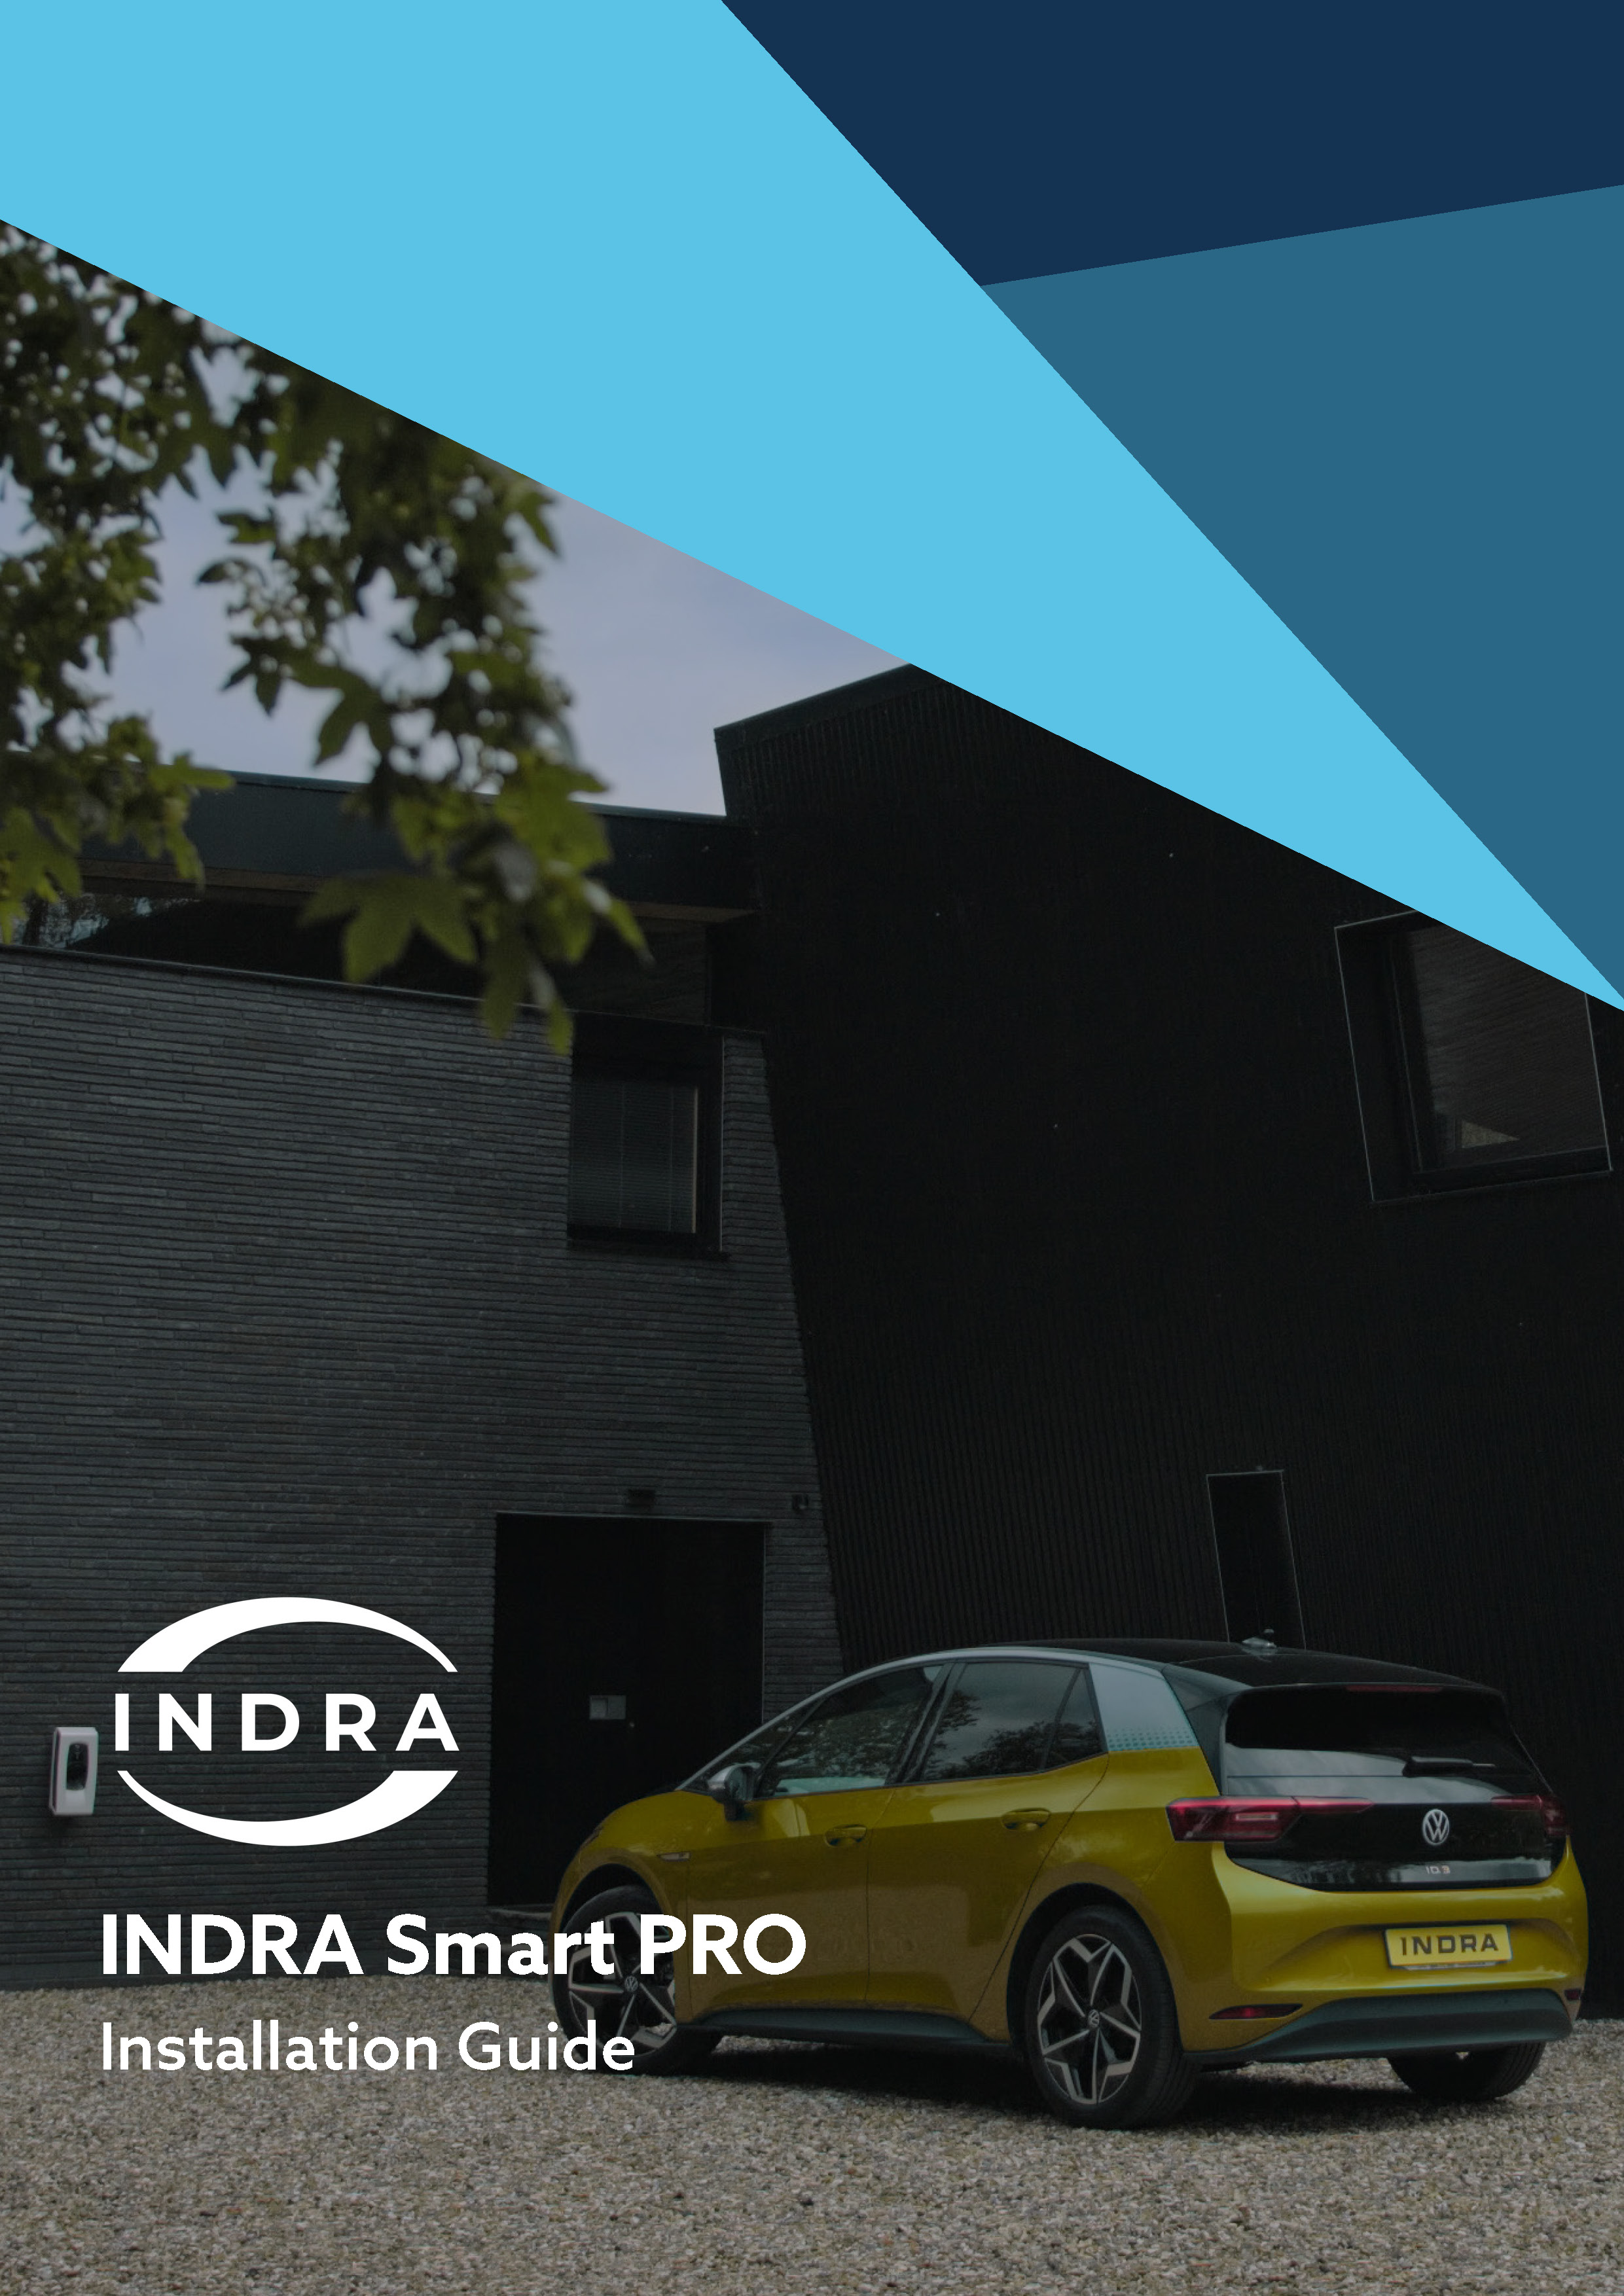 INDRA EV Charger- Smart Pro Installation Guide